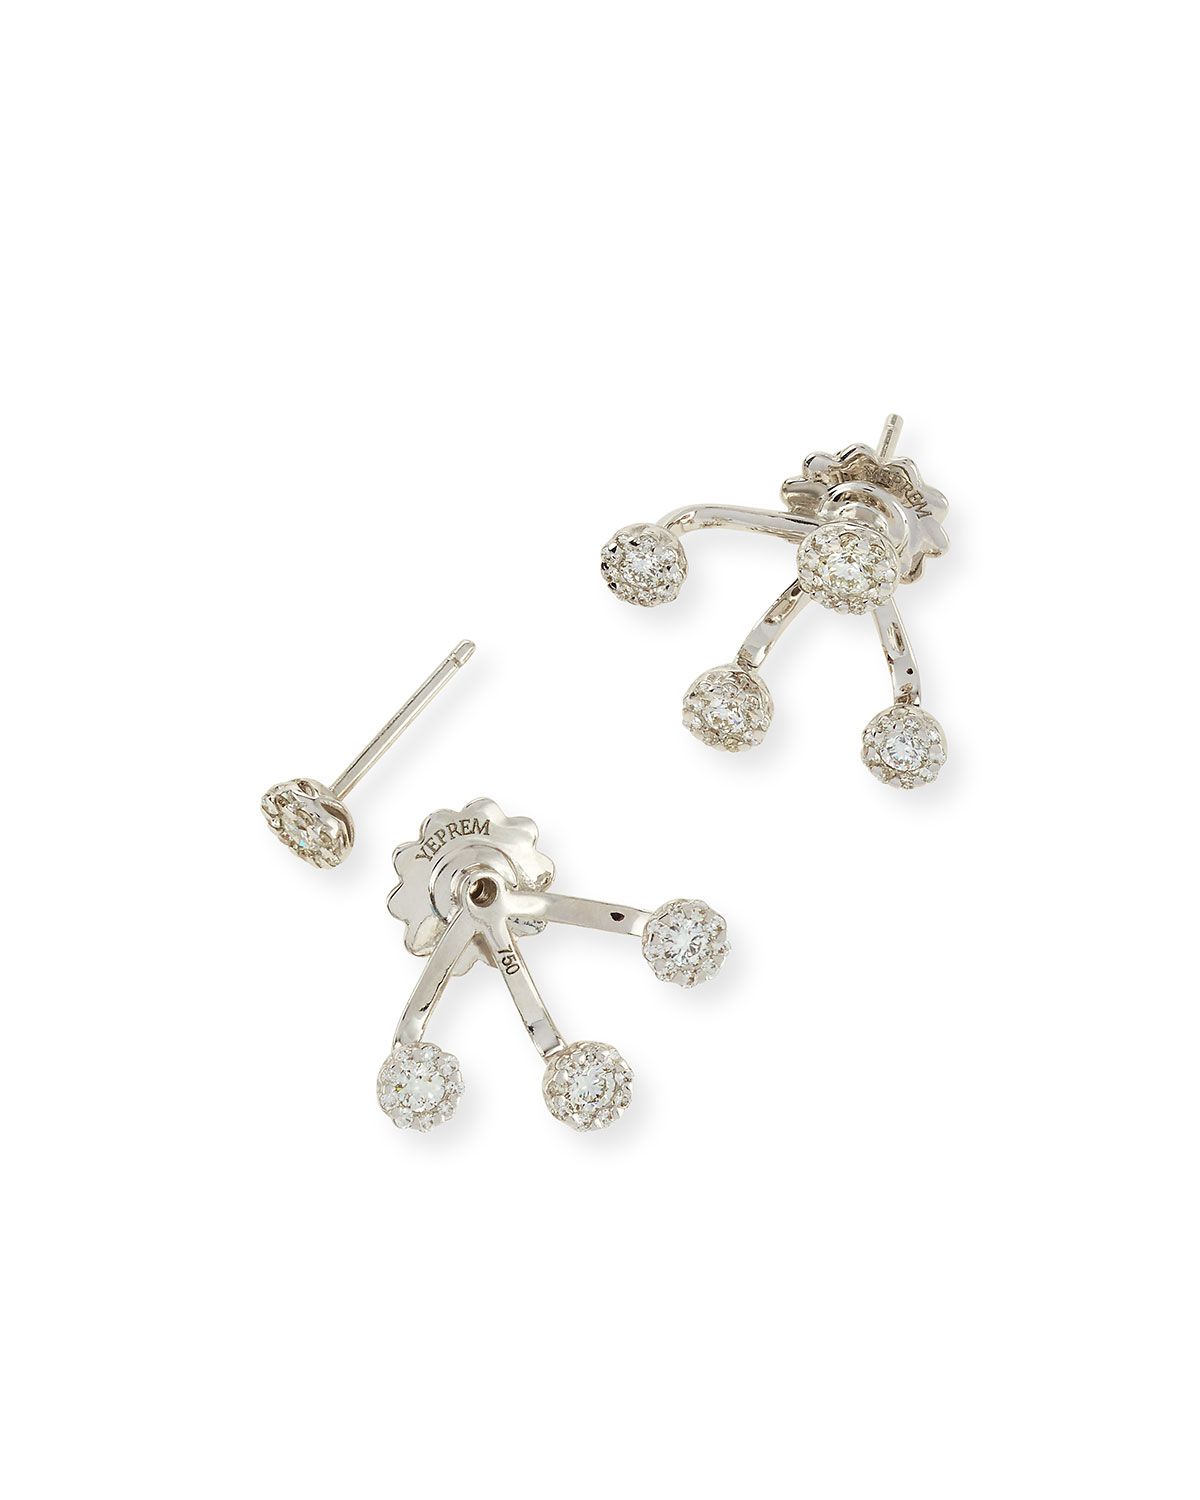 File:Yeprem - Bellflower earrings.jpg